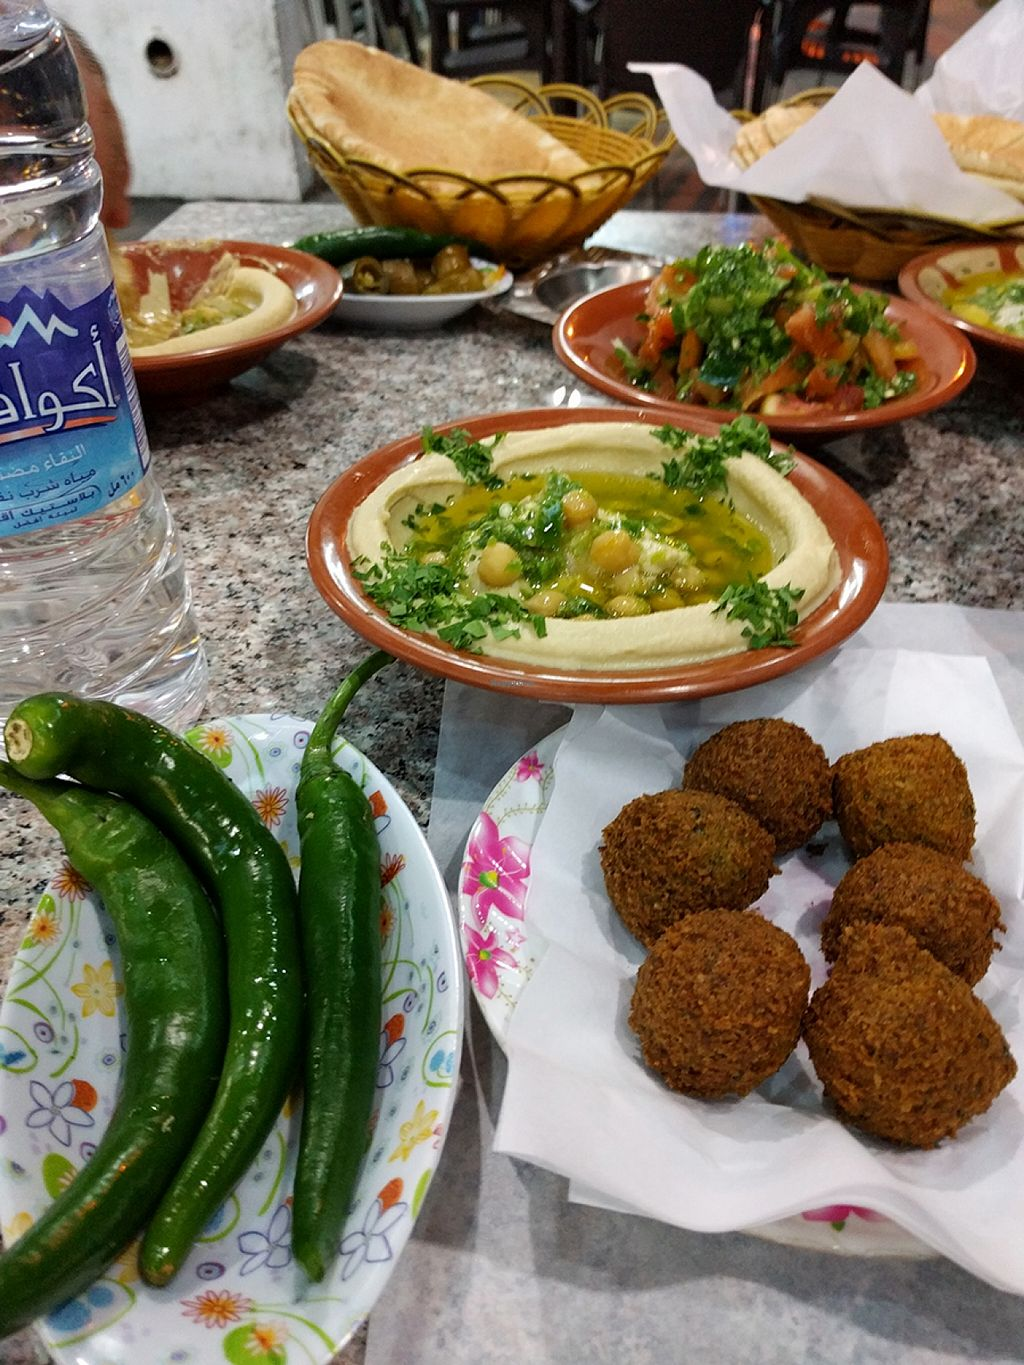 """Photo of Hashem's Son Restaurant  by <a href=""""/members/profile/The%20Hungry%20Vegan"""">The Hungry Vegan</a> <br/>Roasted Peppers, falafel, hummus, fatoush, arabic bread <br/> January 22, 2016  - <a href='/contact/abuse/image/68528/133363'>Report</a>"""